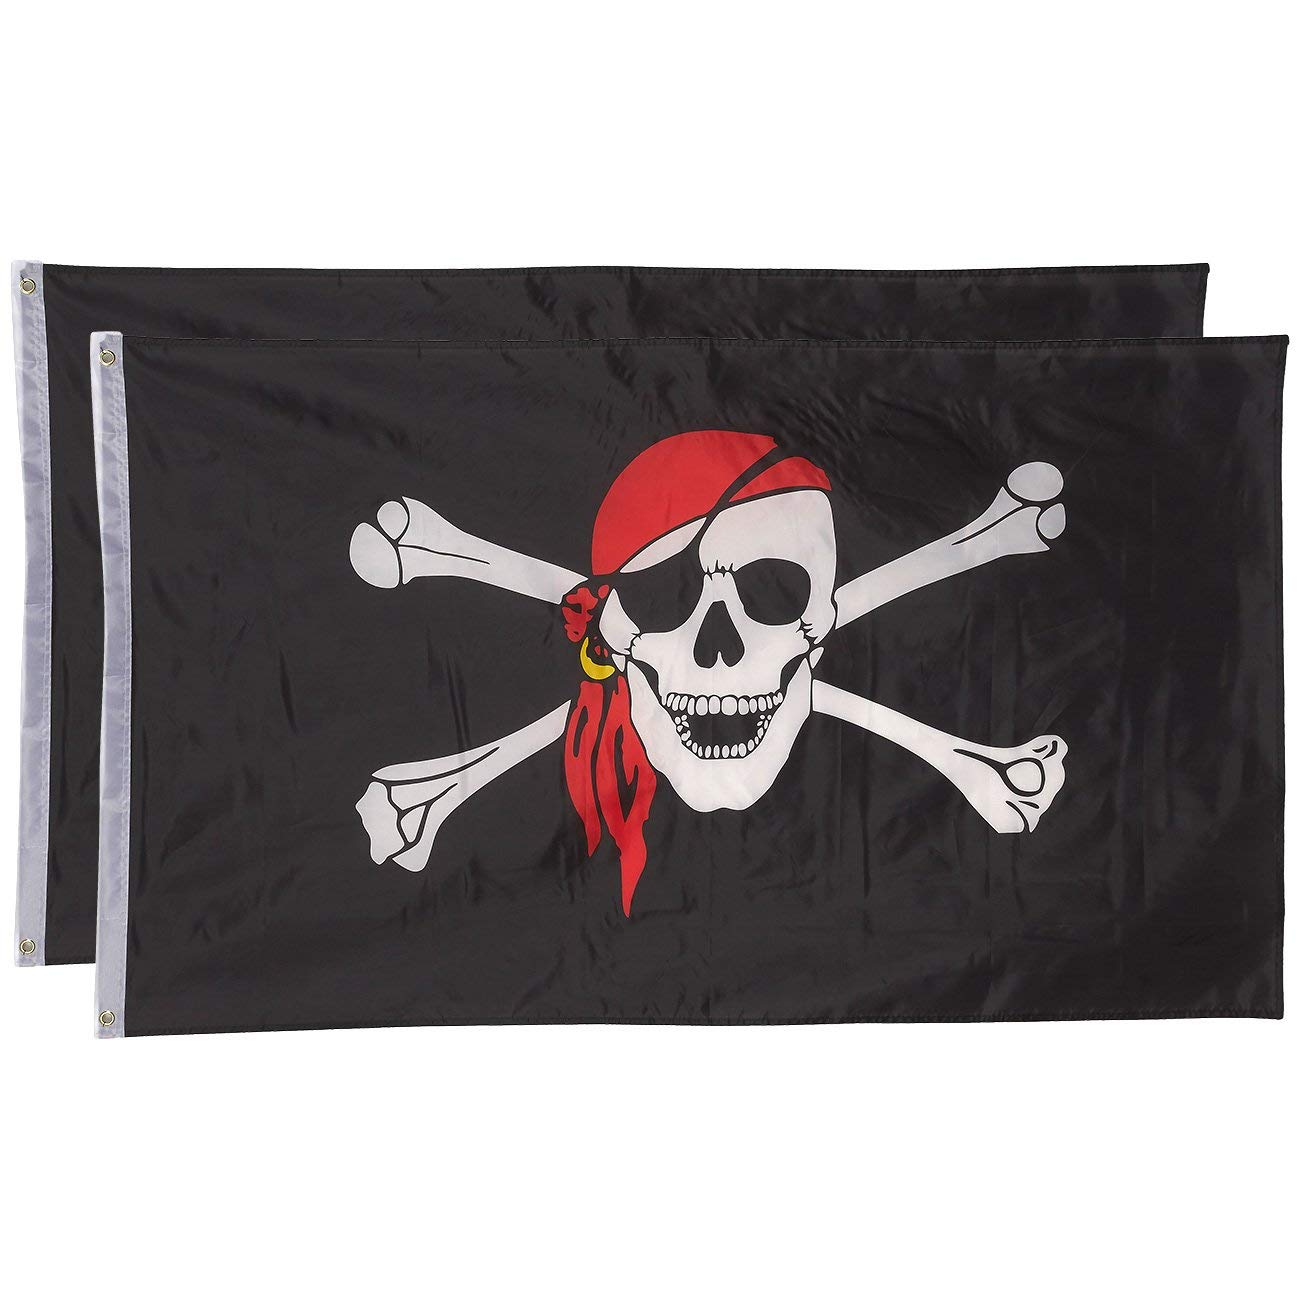 Cheap Printable Pirate Flags Find Printable Pirate Flags Deals On